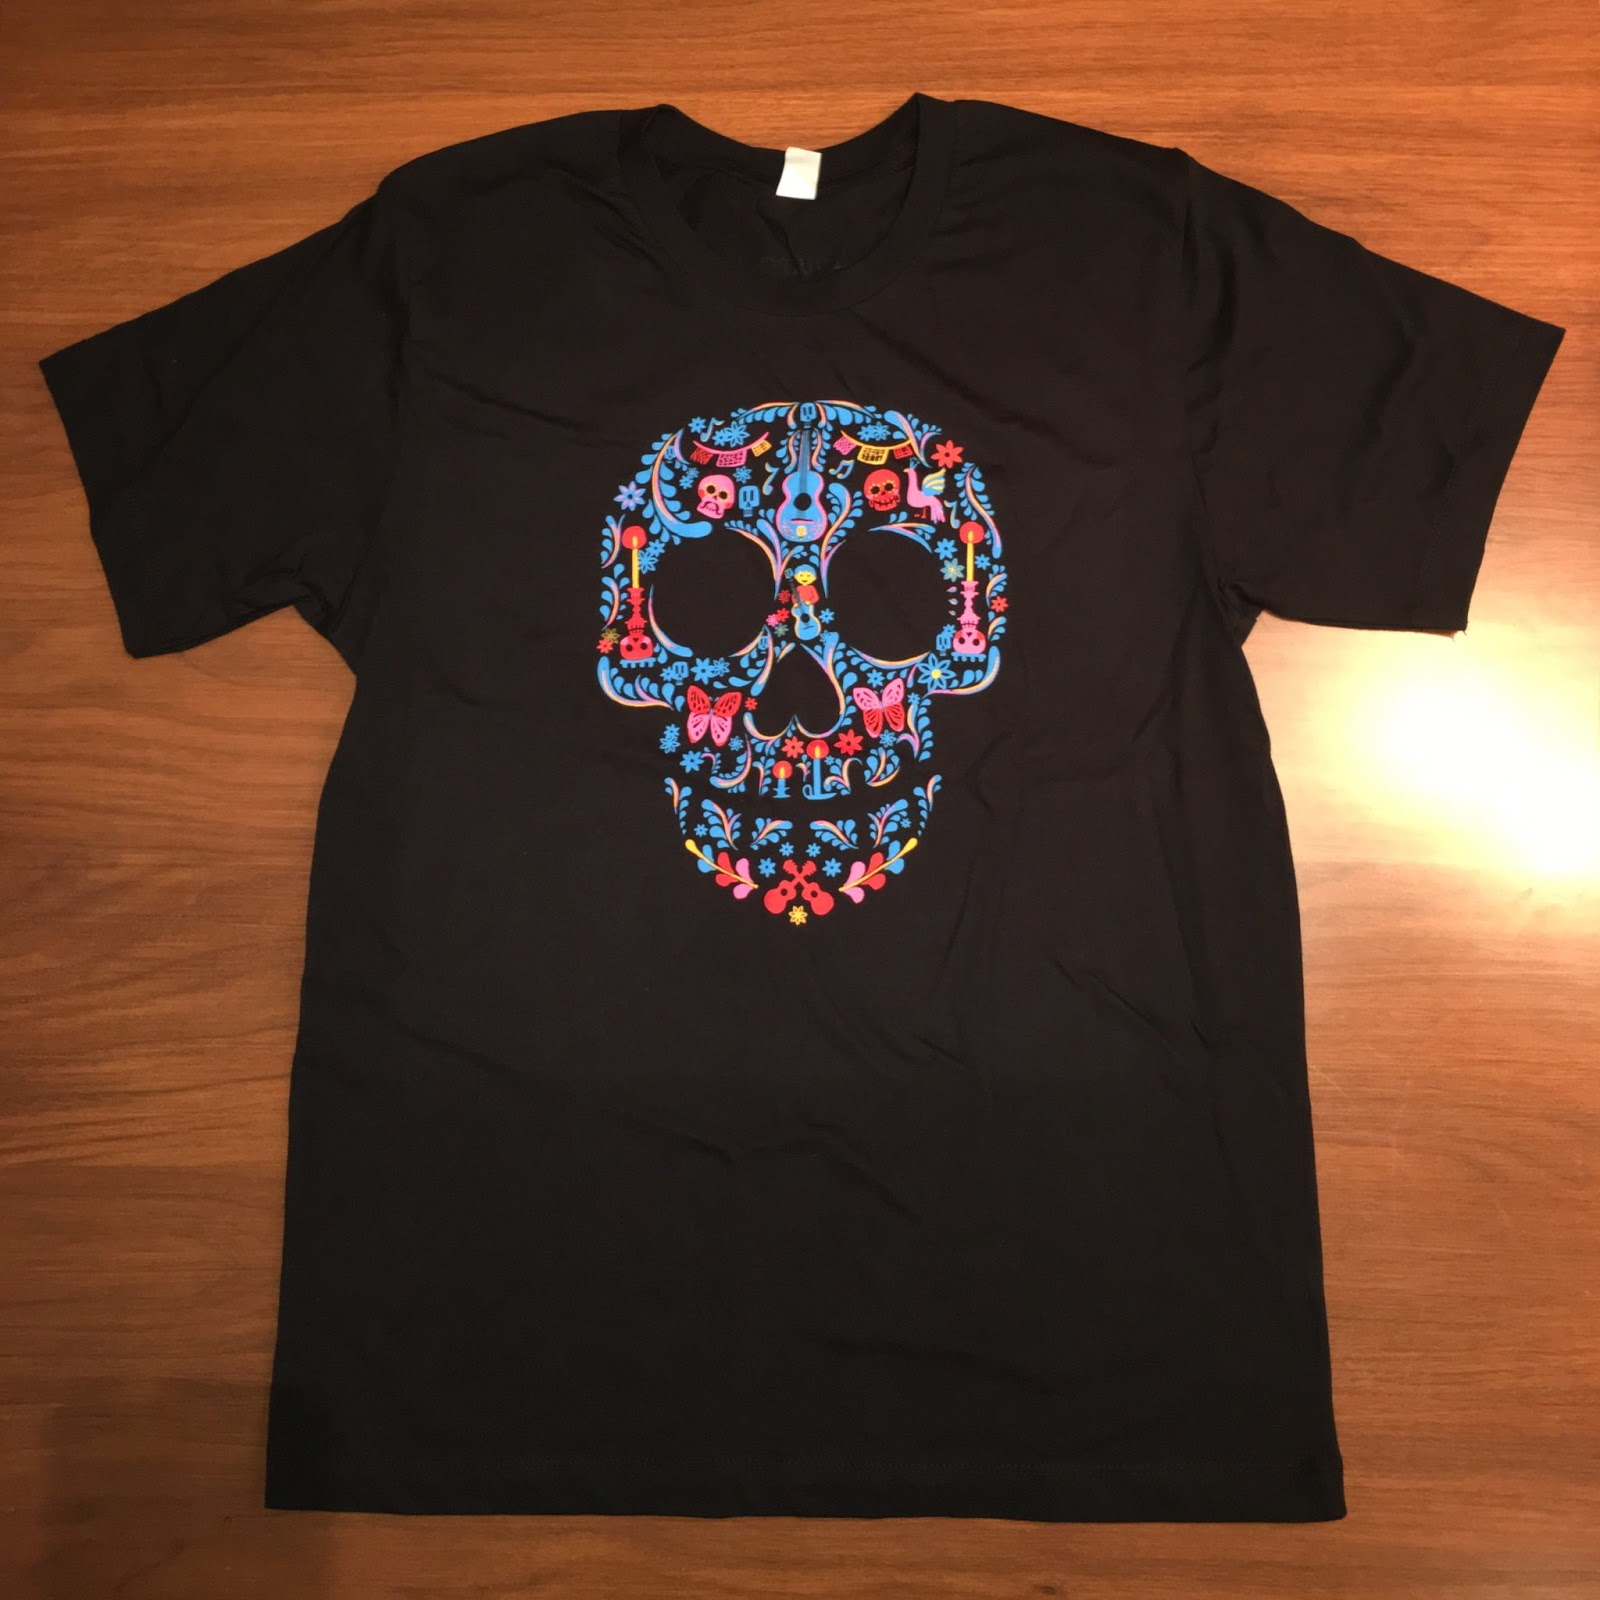 Pixar Employee 39 Coco 39 Crew Shirt And Updated Logo For The